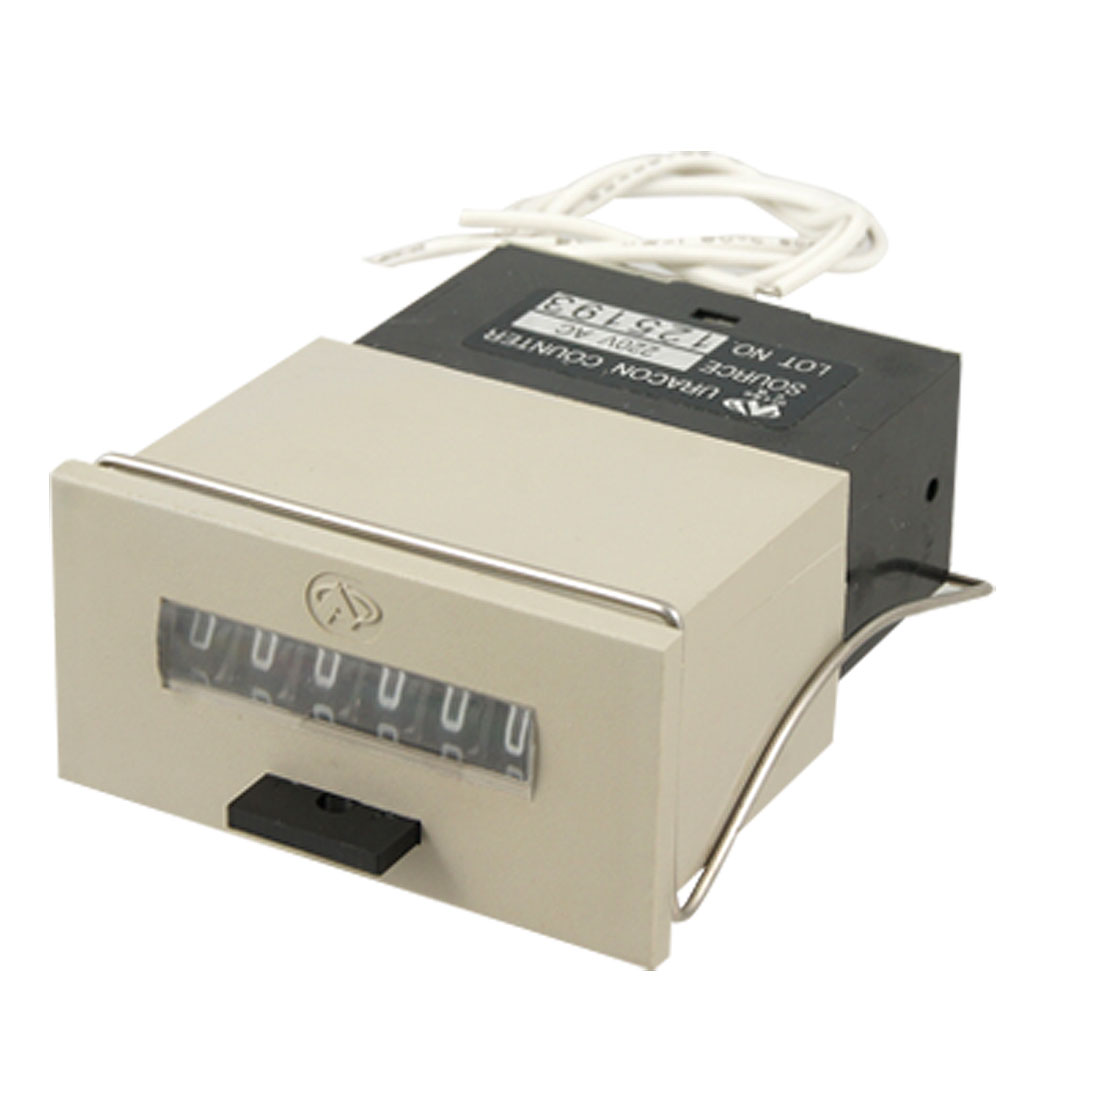 AC 220V 6 Digit Roller Register Electromagnetic Counter